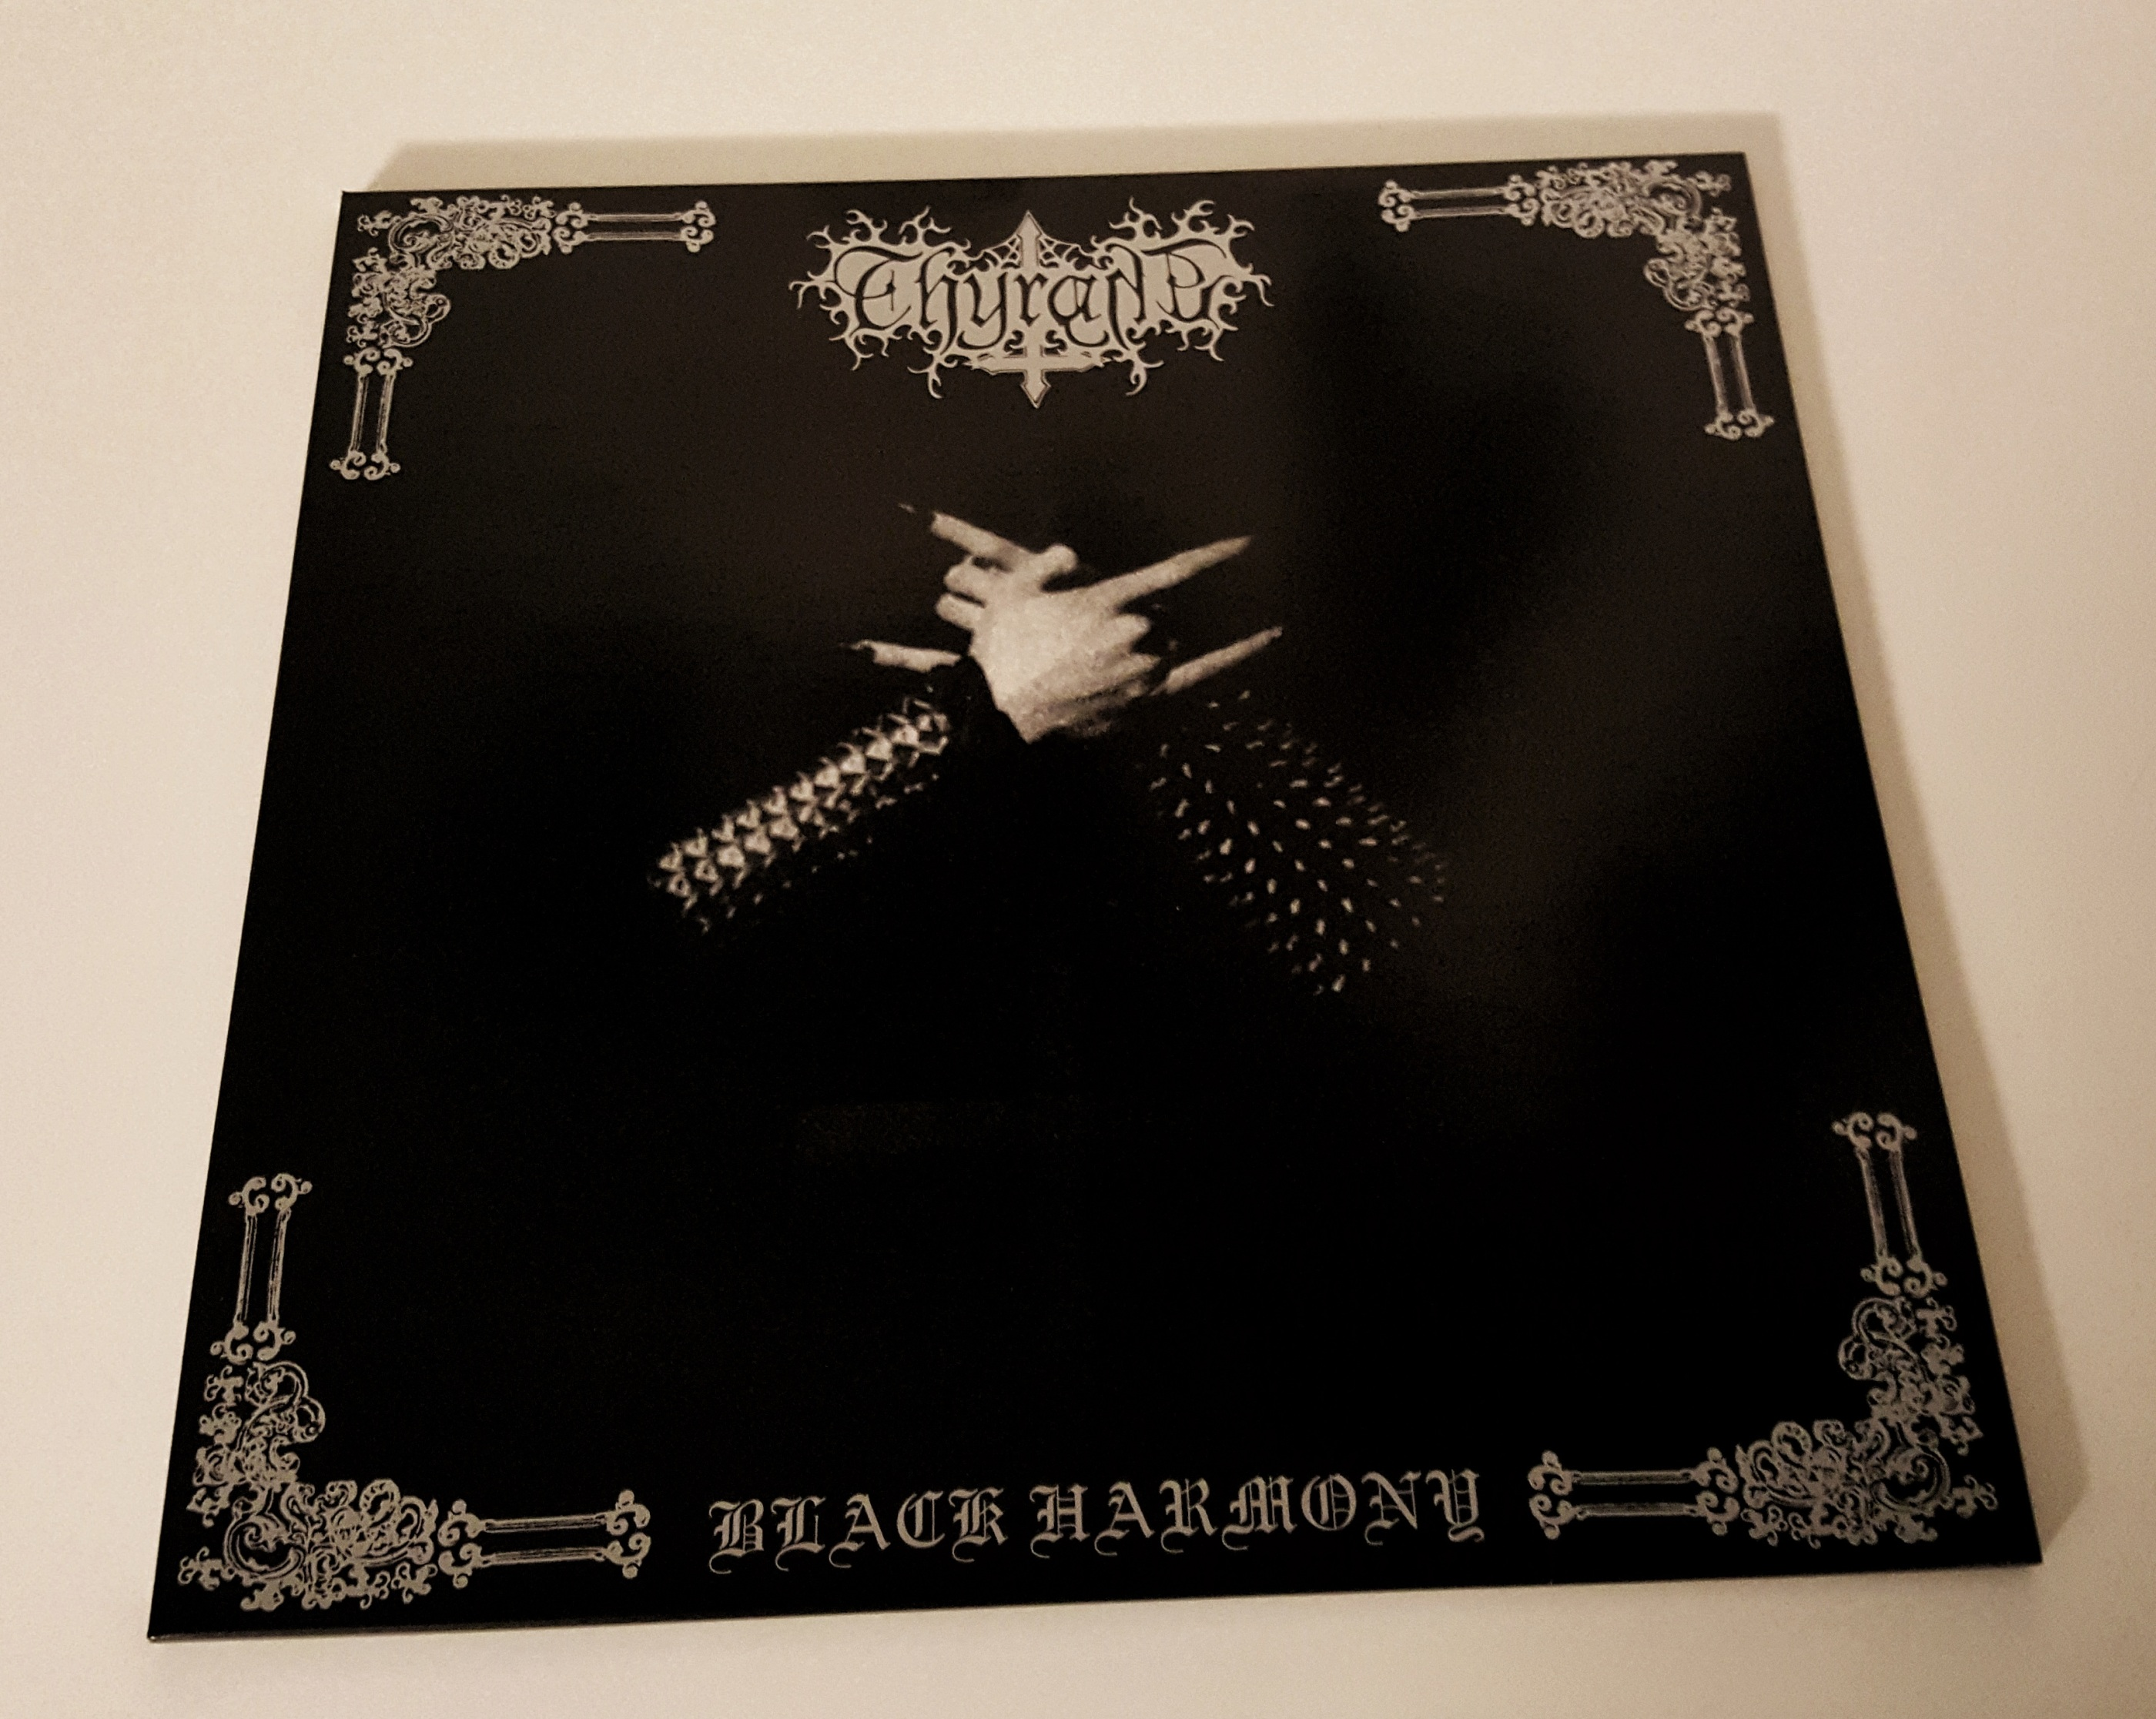 "THYRANE – Black Harmony 12"" LP"